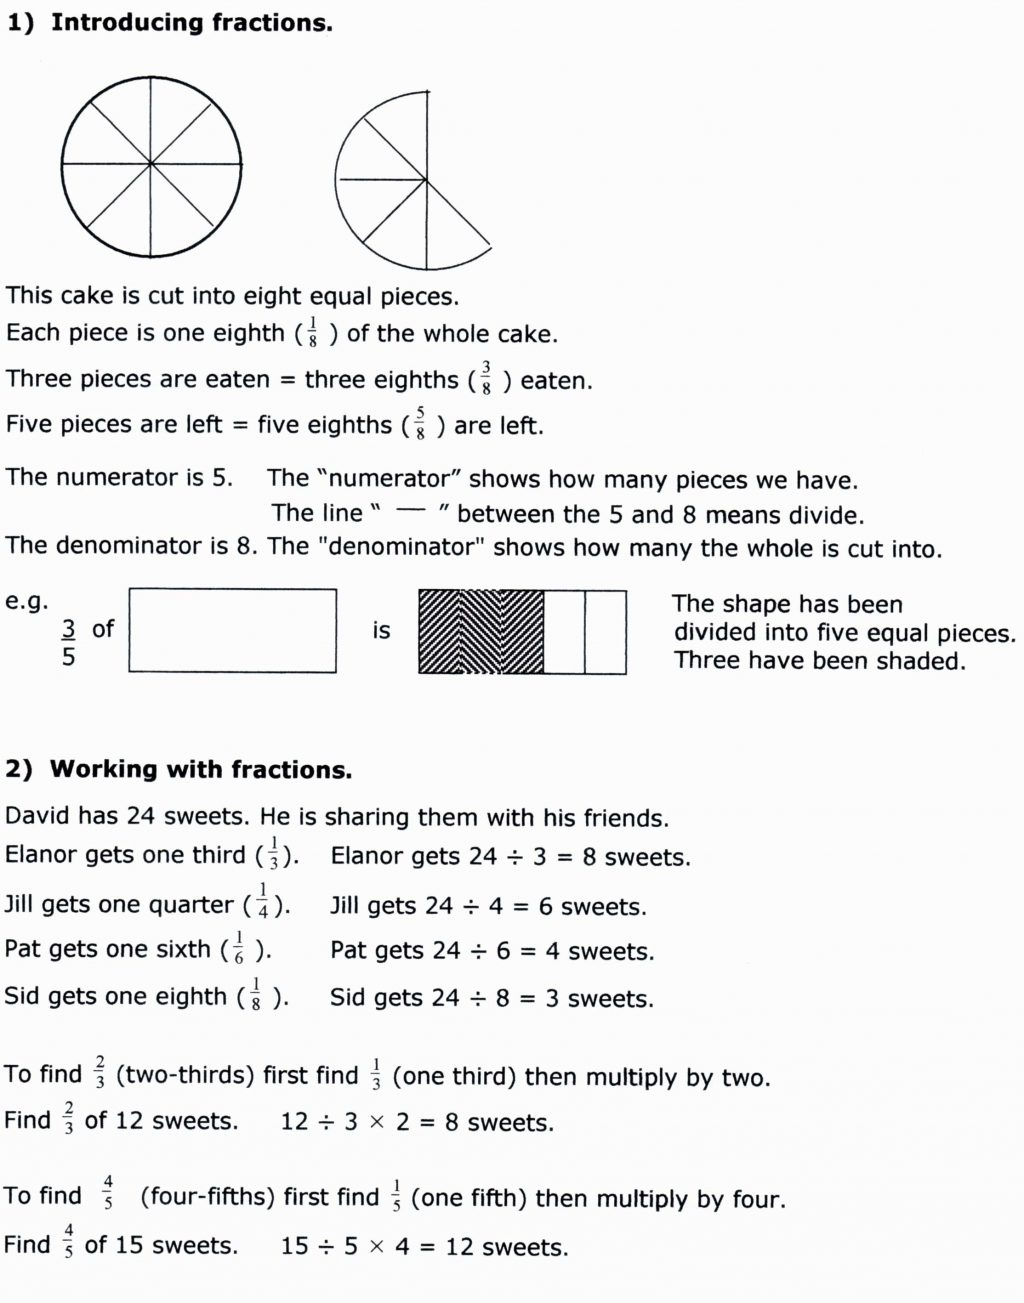 Fractions Worksheets 7th Grade Math Printable Worksheet